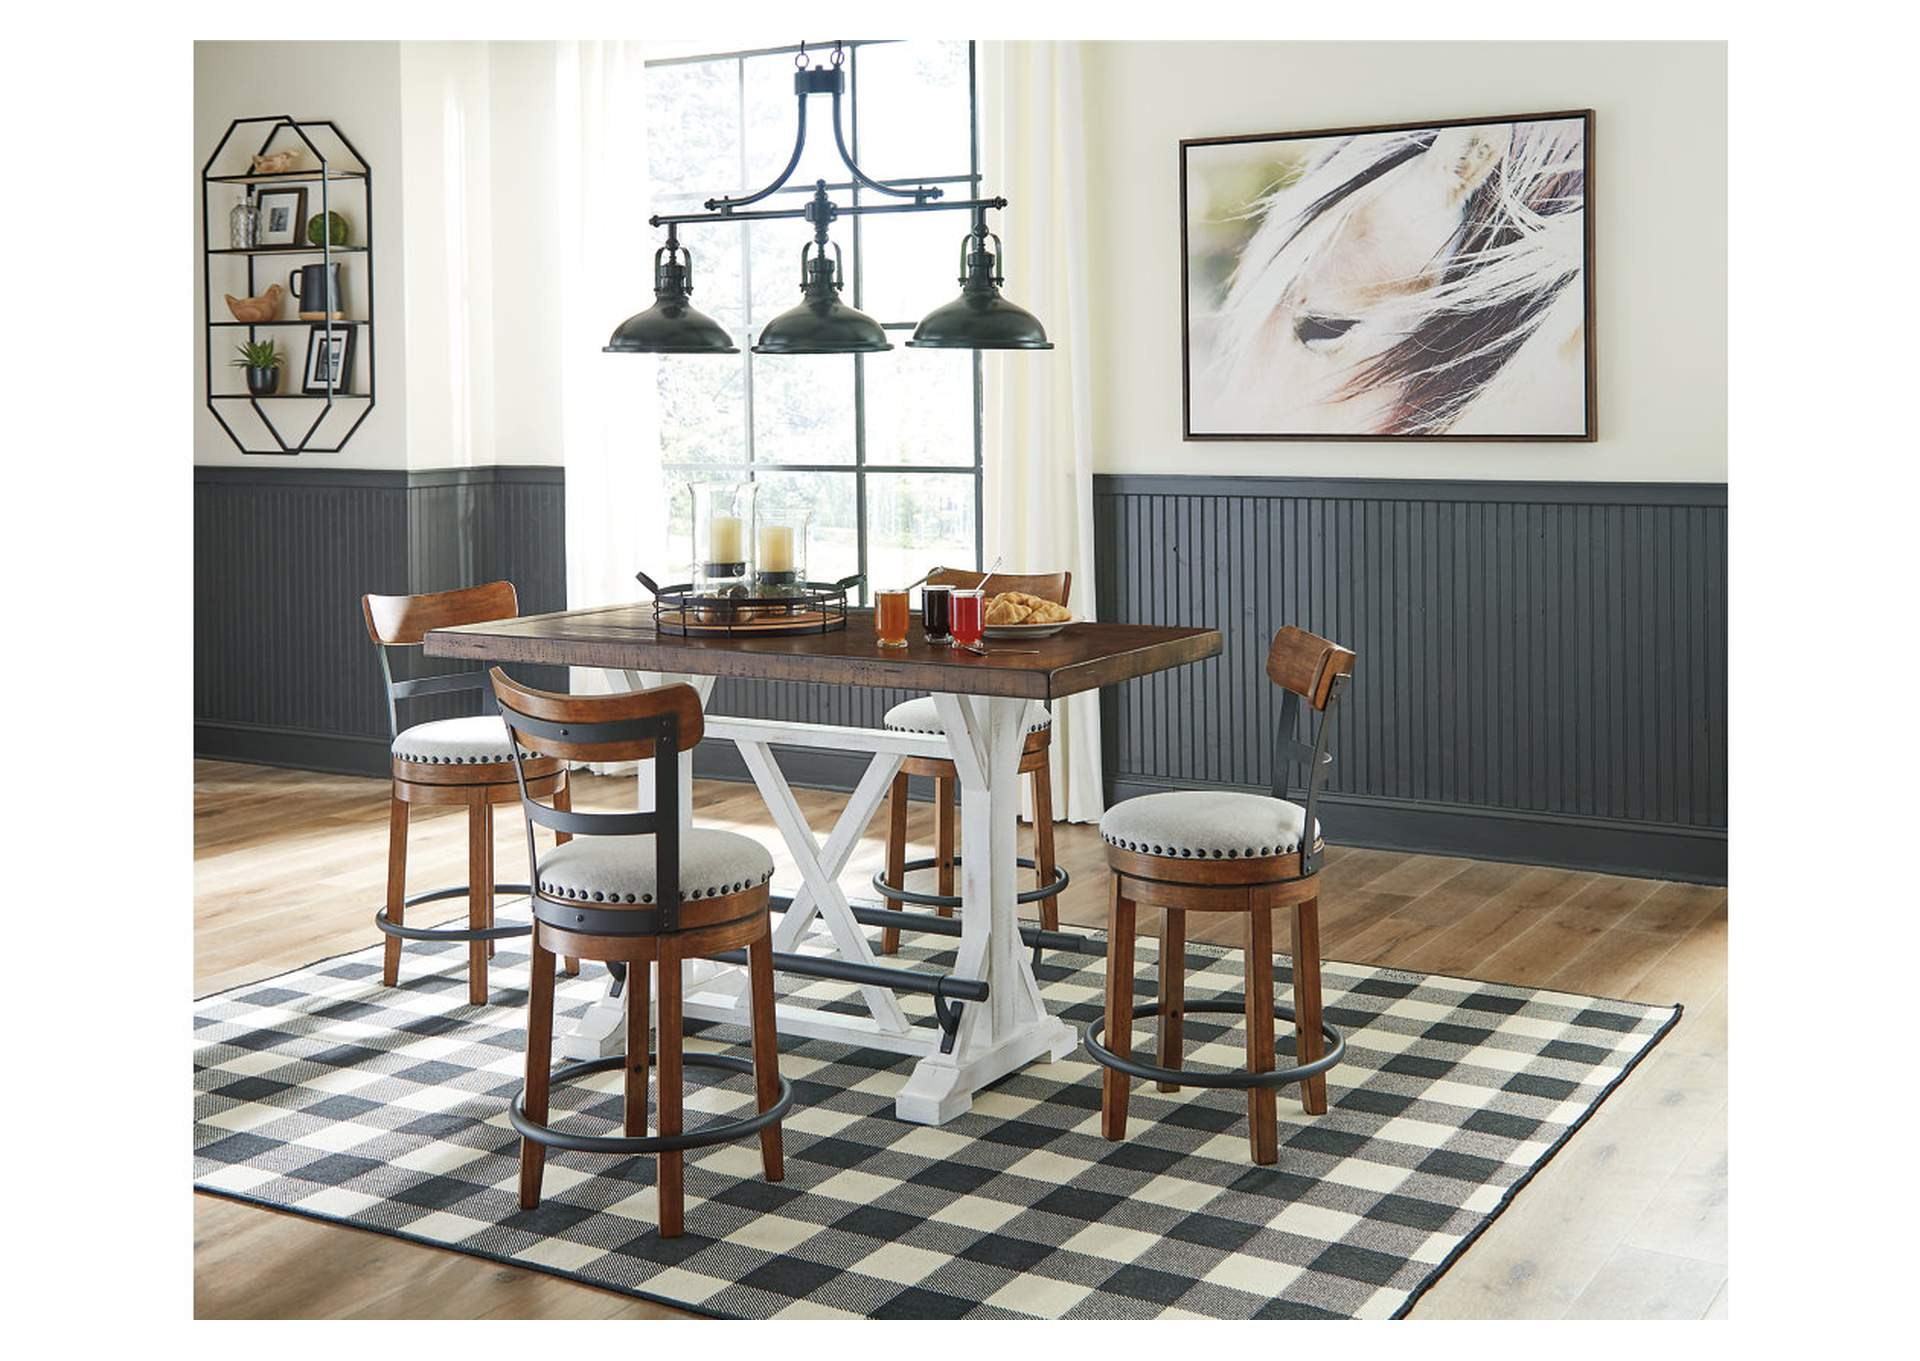 Valebeck Brown Counter Height Dining Table w/4 Backed Brown Barstools,Signature Design By Ashley